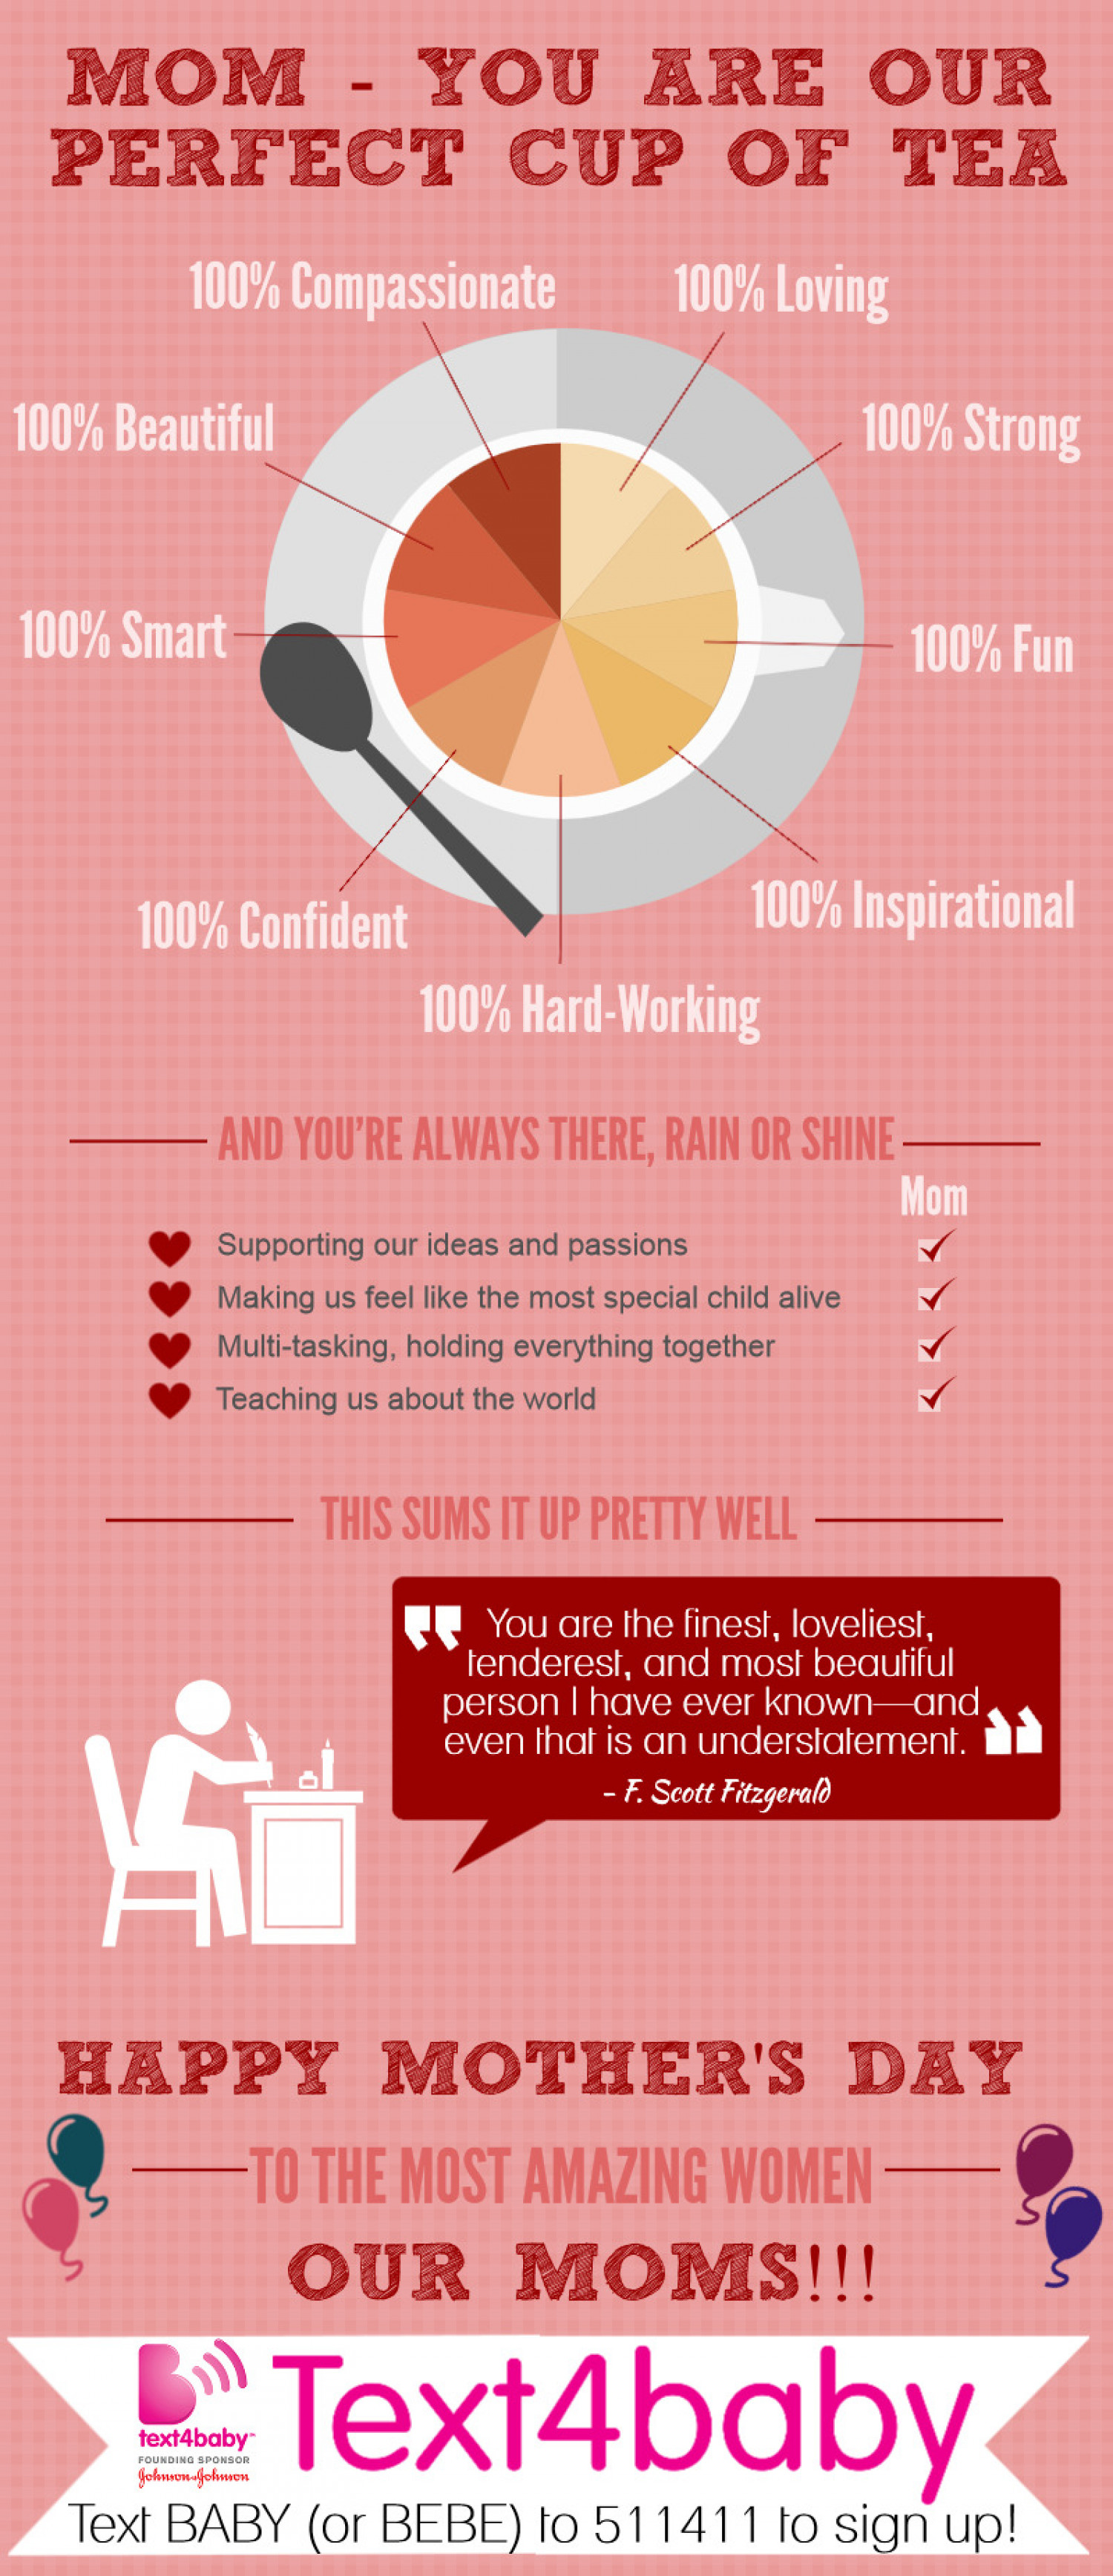 Mom - You Are Our Perfect Cup Of Tea Infographic